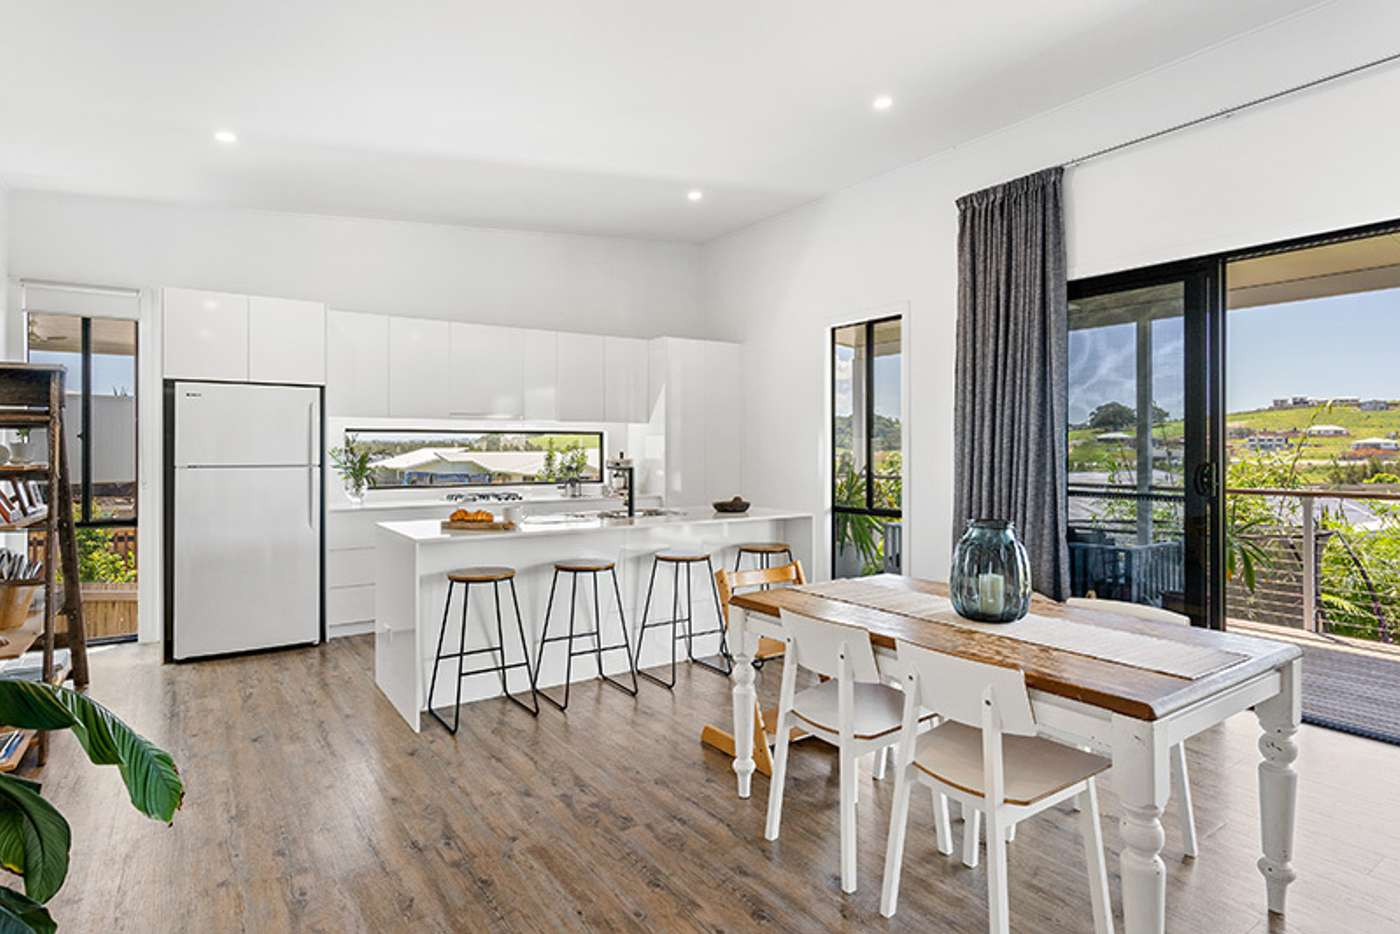 Main view of Homely house listing, 31 Fox Valley Way, Lennox Head NSW 2478